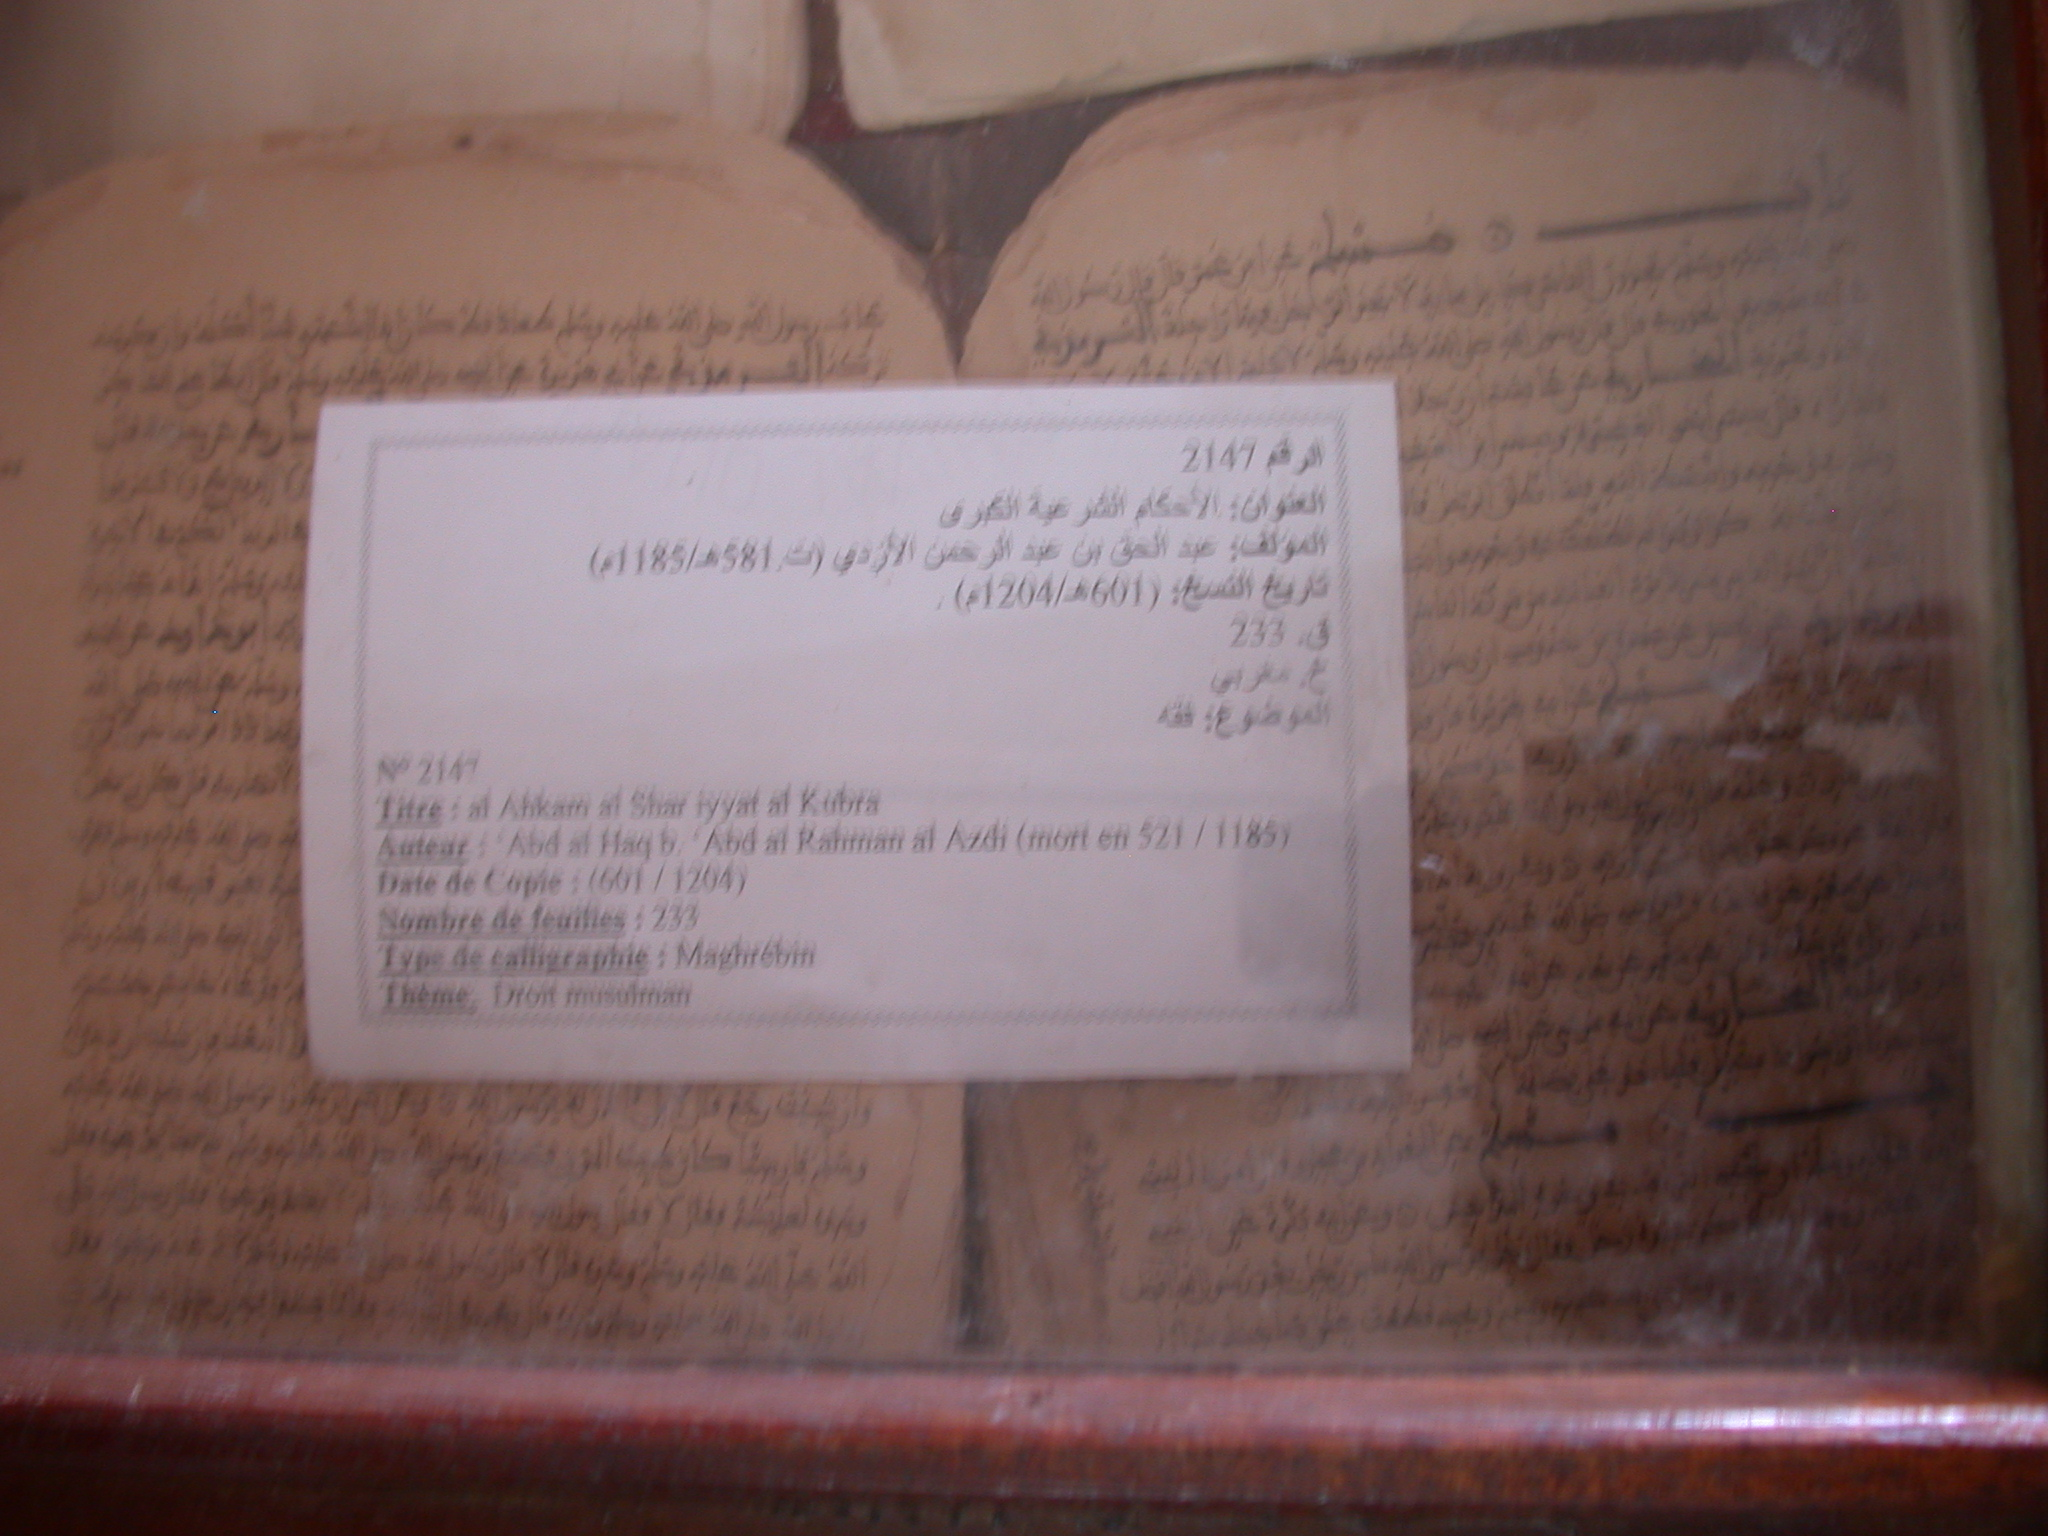 Bad Photo of Manuscript, Al Ahkam al Shar iyyat al Kubra, Copied in 1204, Ahmed Baba Institute, Institut des Hautes Etudes et de Recherches Islamiques, Timbuktu, Mali